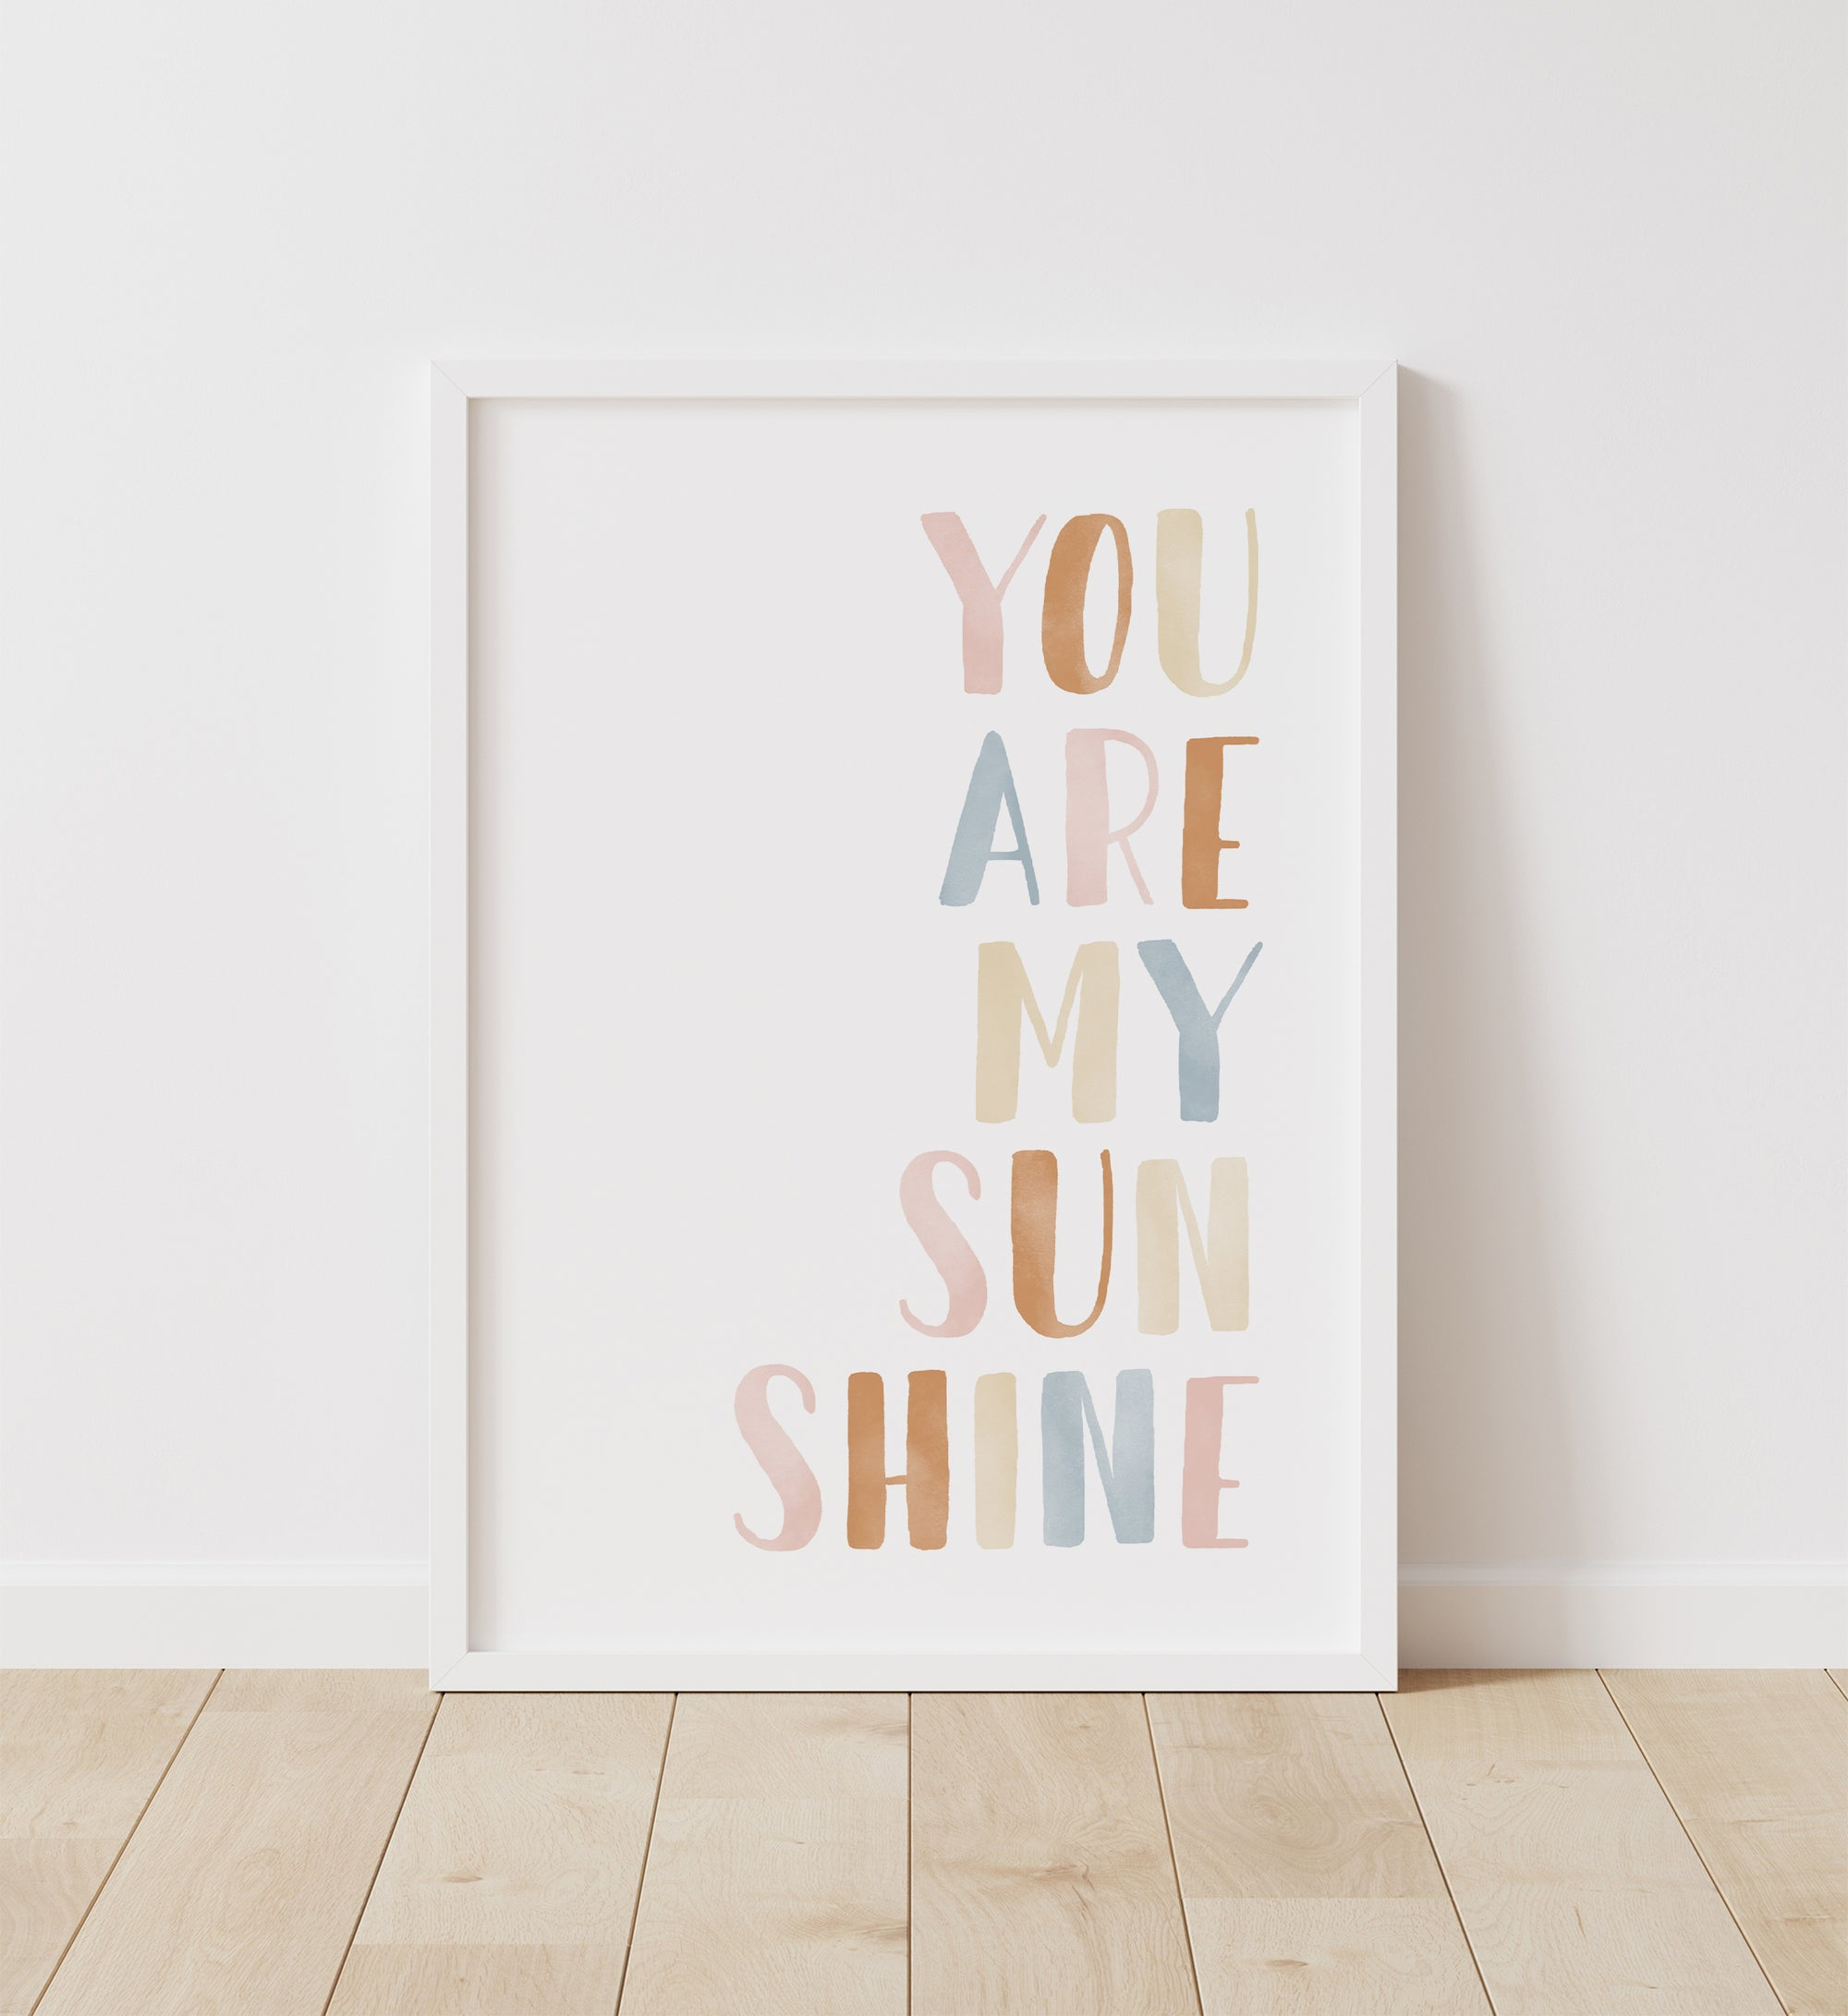 You Are My Sunshine - Boho